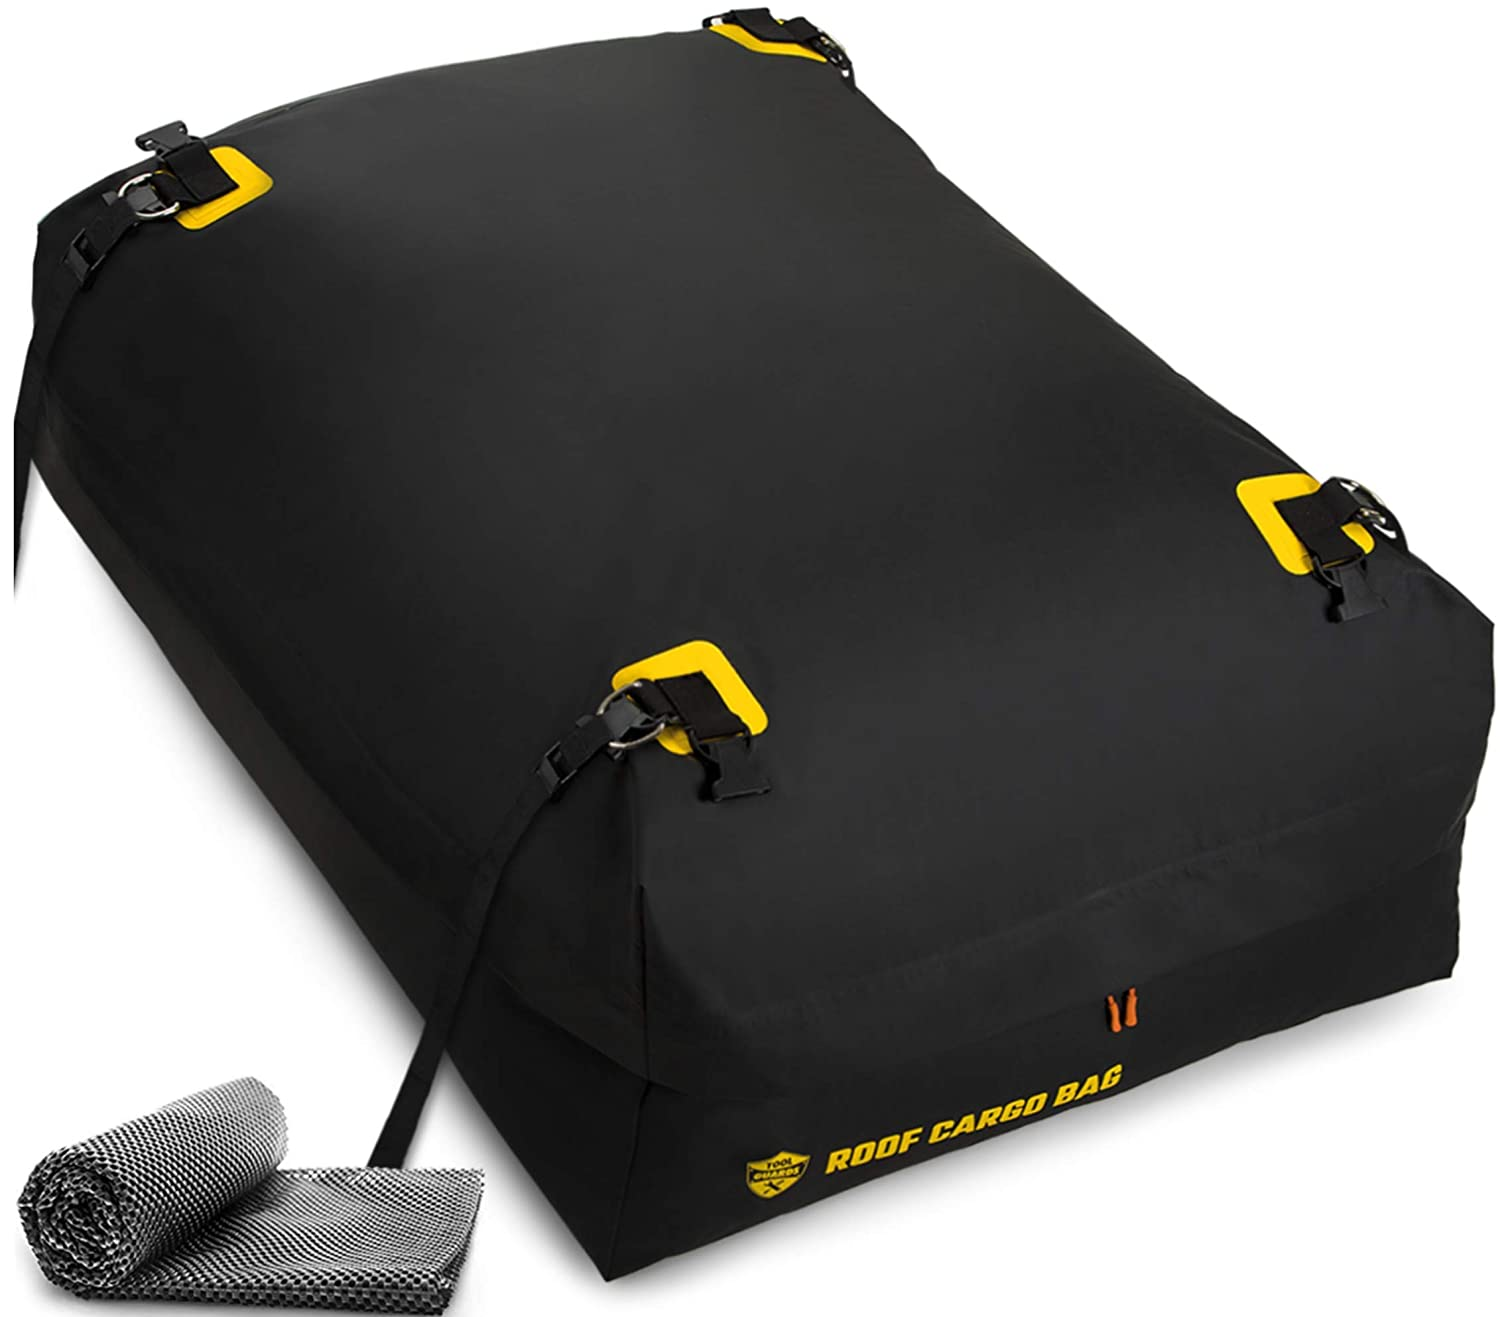 TOOLGUARDS Car Top Carrier Roof Bag - photo